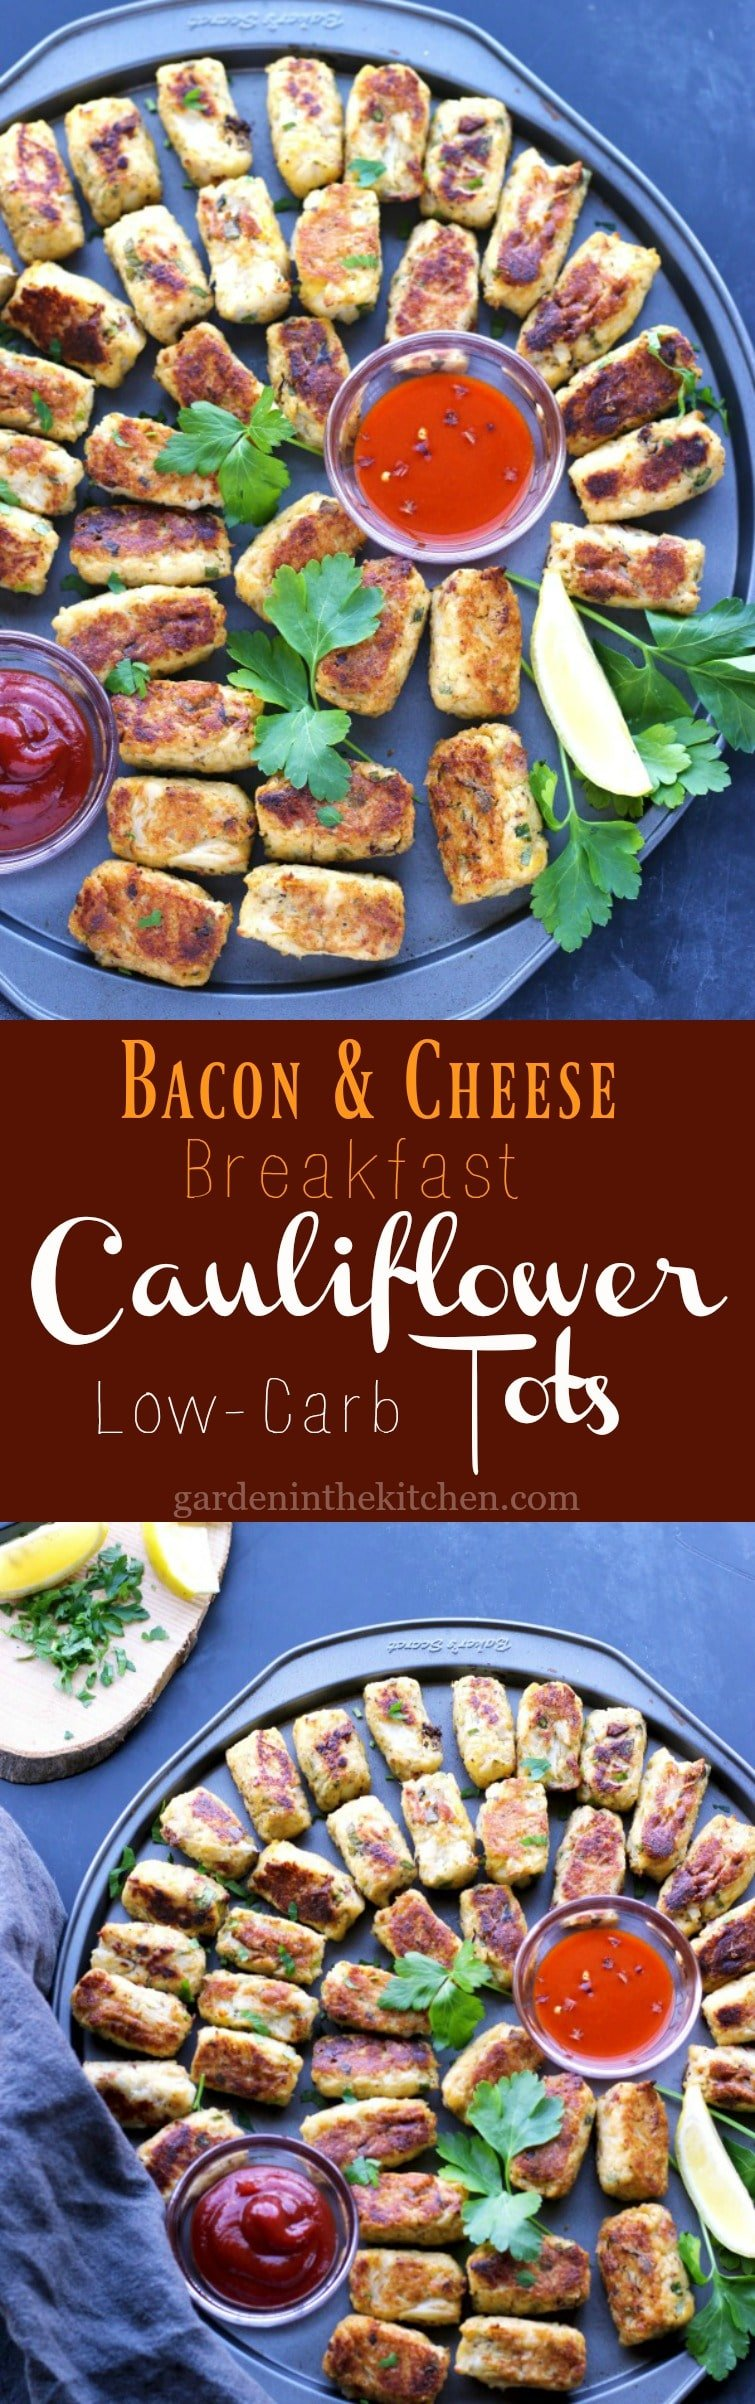 Bacon & Cheese Cauliflower Tots